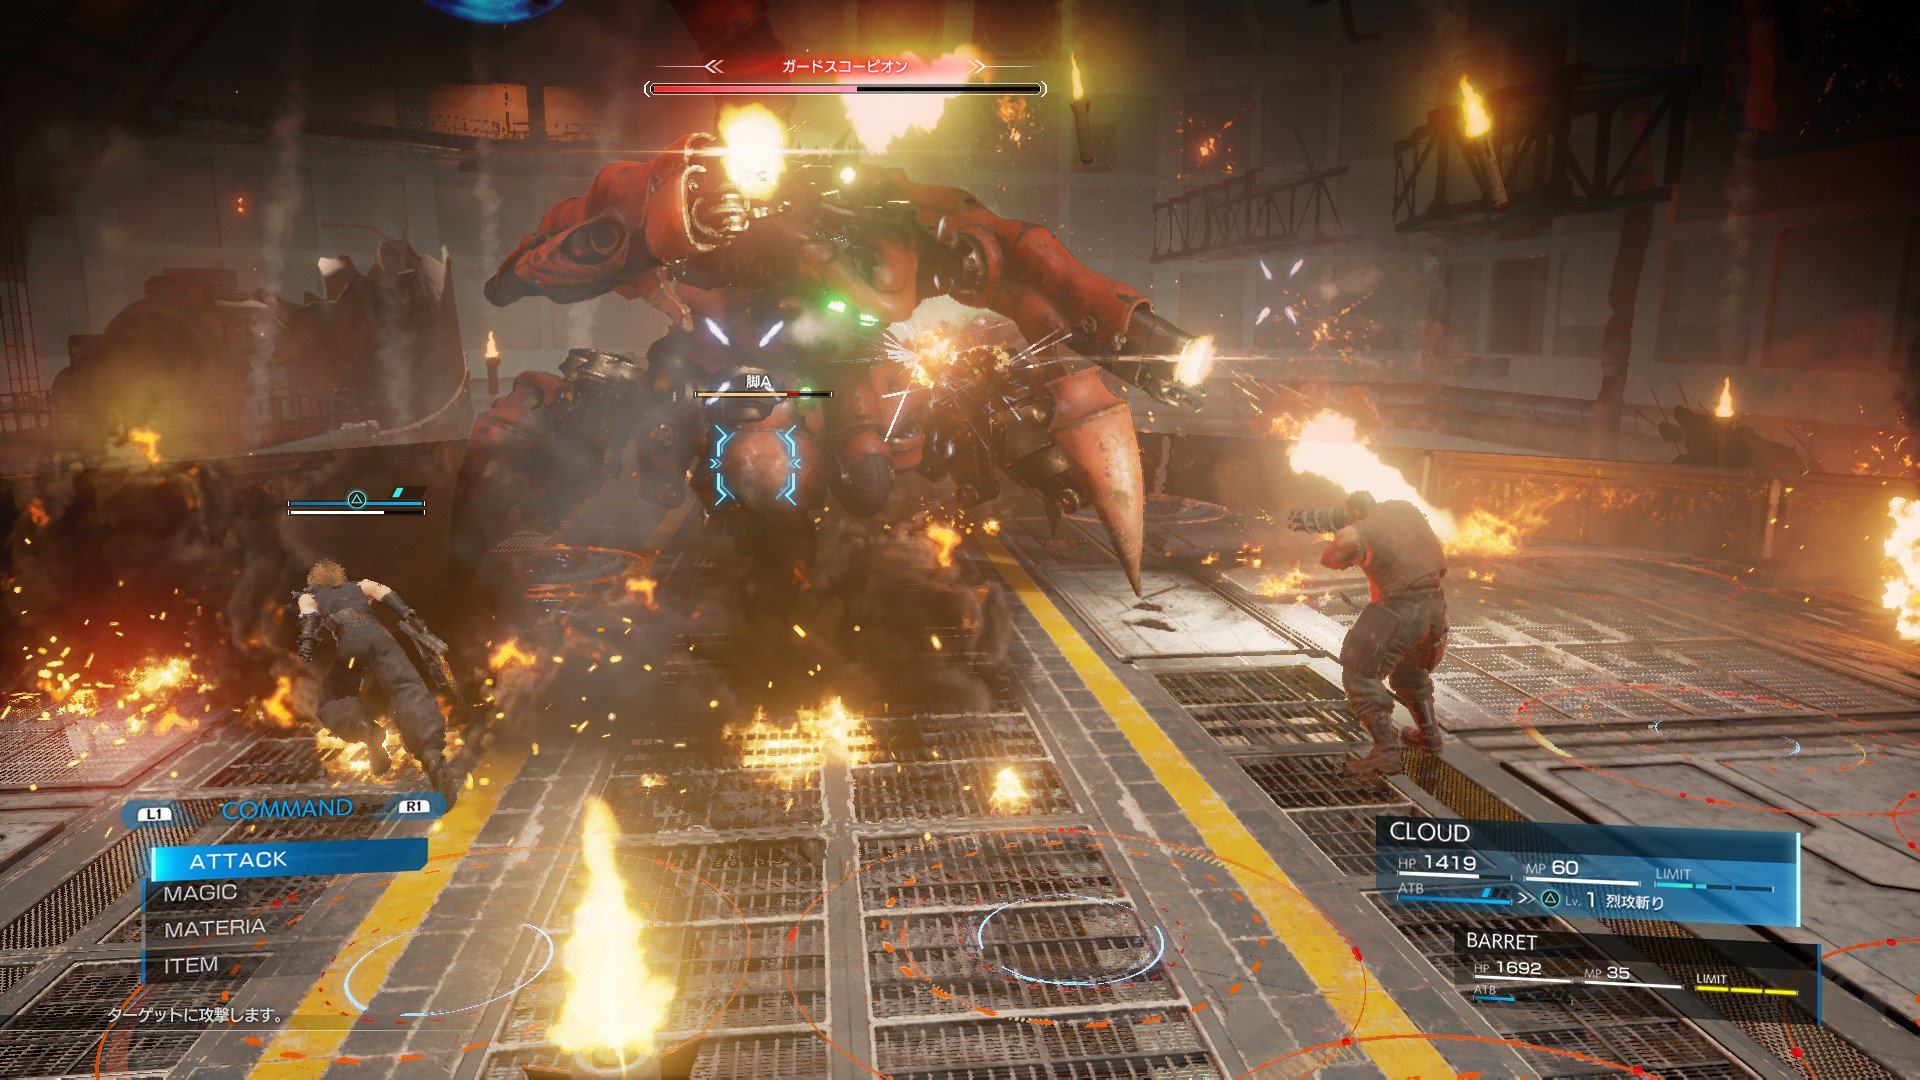 Image de gameplay du remake HD de Final Fantasy VII par Square Enix